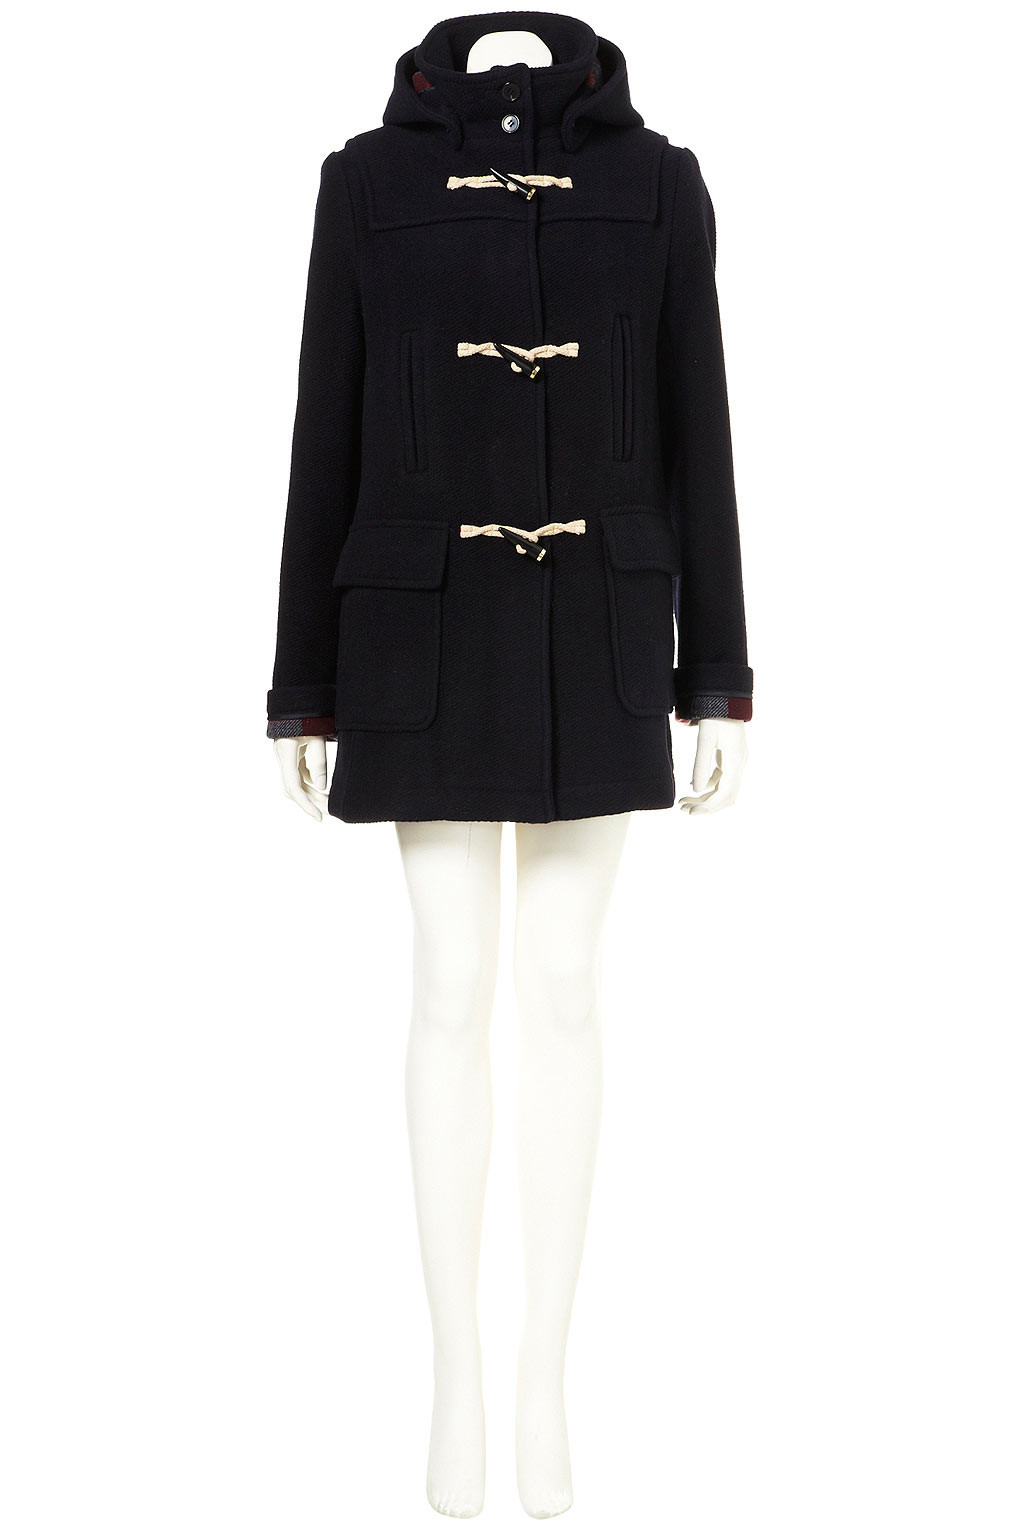 Topshop Navy Bound Seam Duffle Coat in Black | Lyst